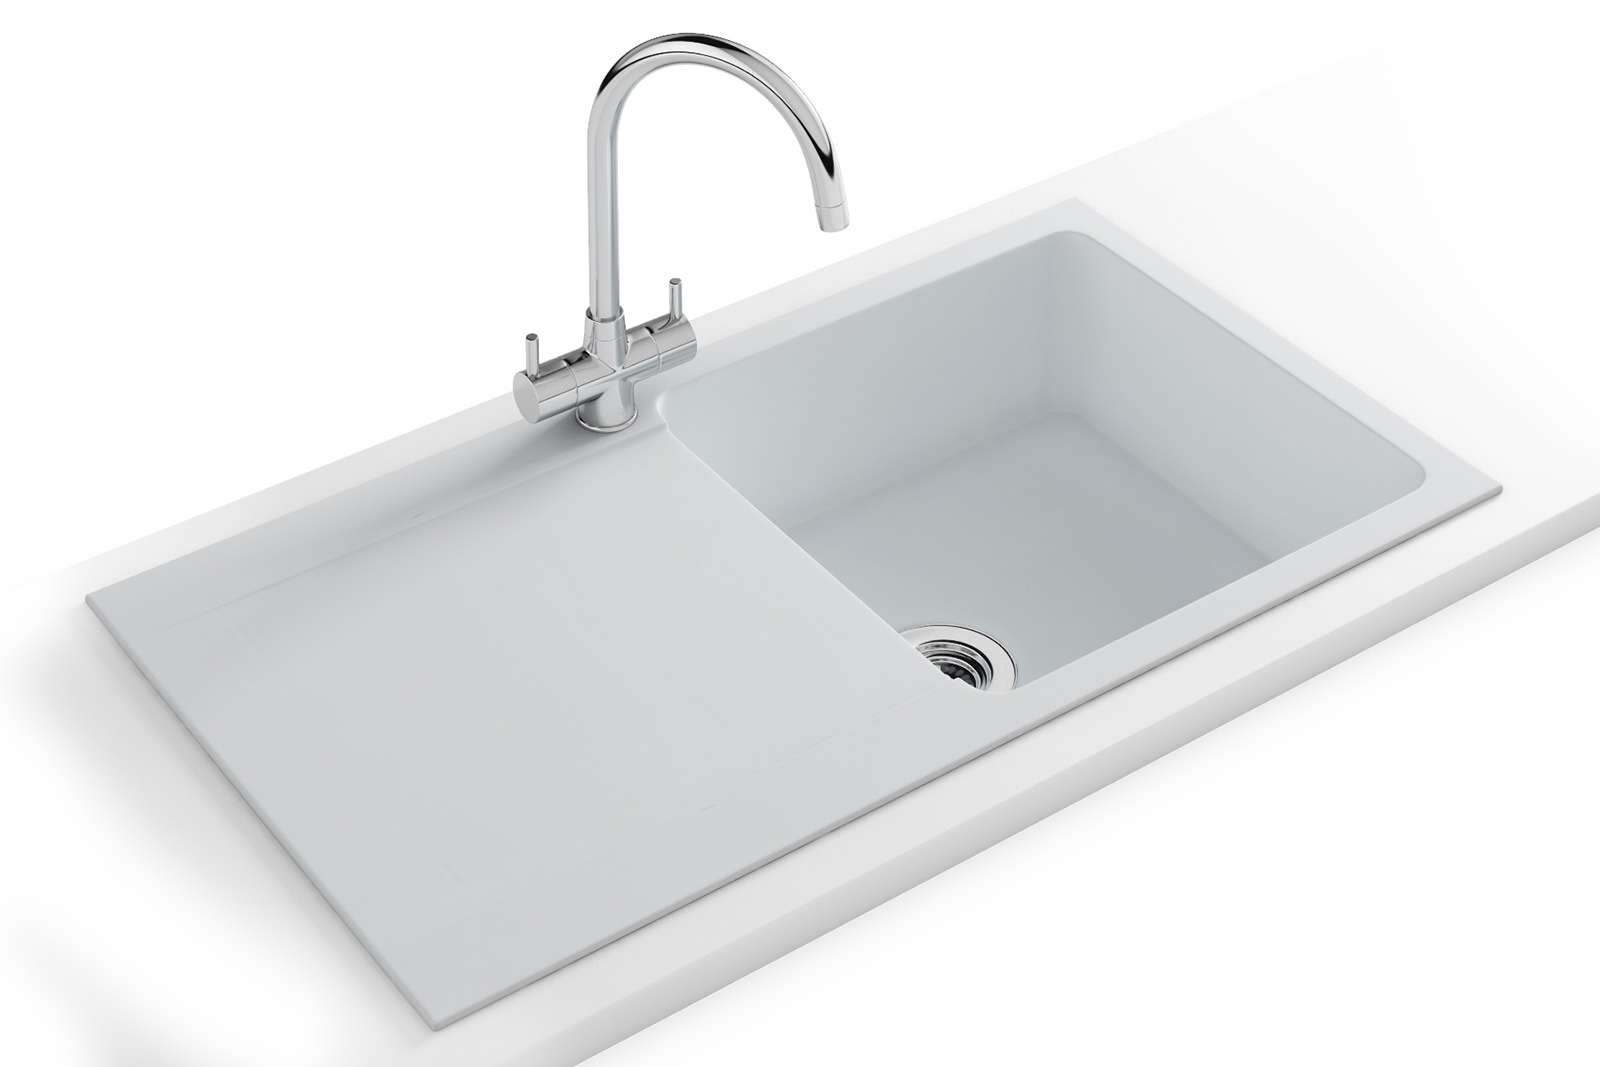 Sink bowl bathroom - Franke Orion Oid 611 94 Tectonite Polar White 1 0 Bowl